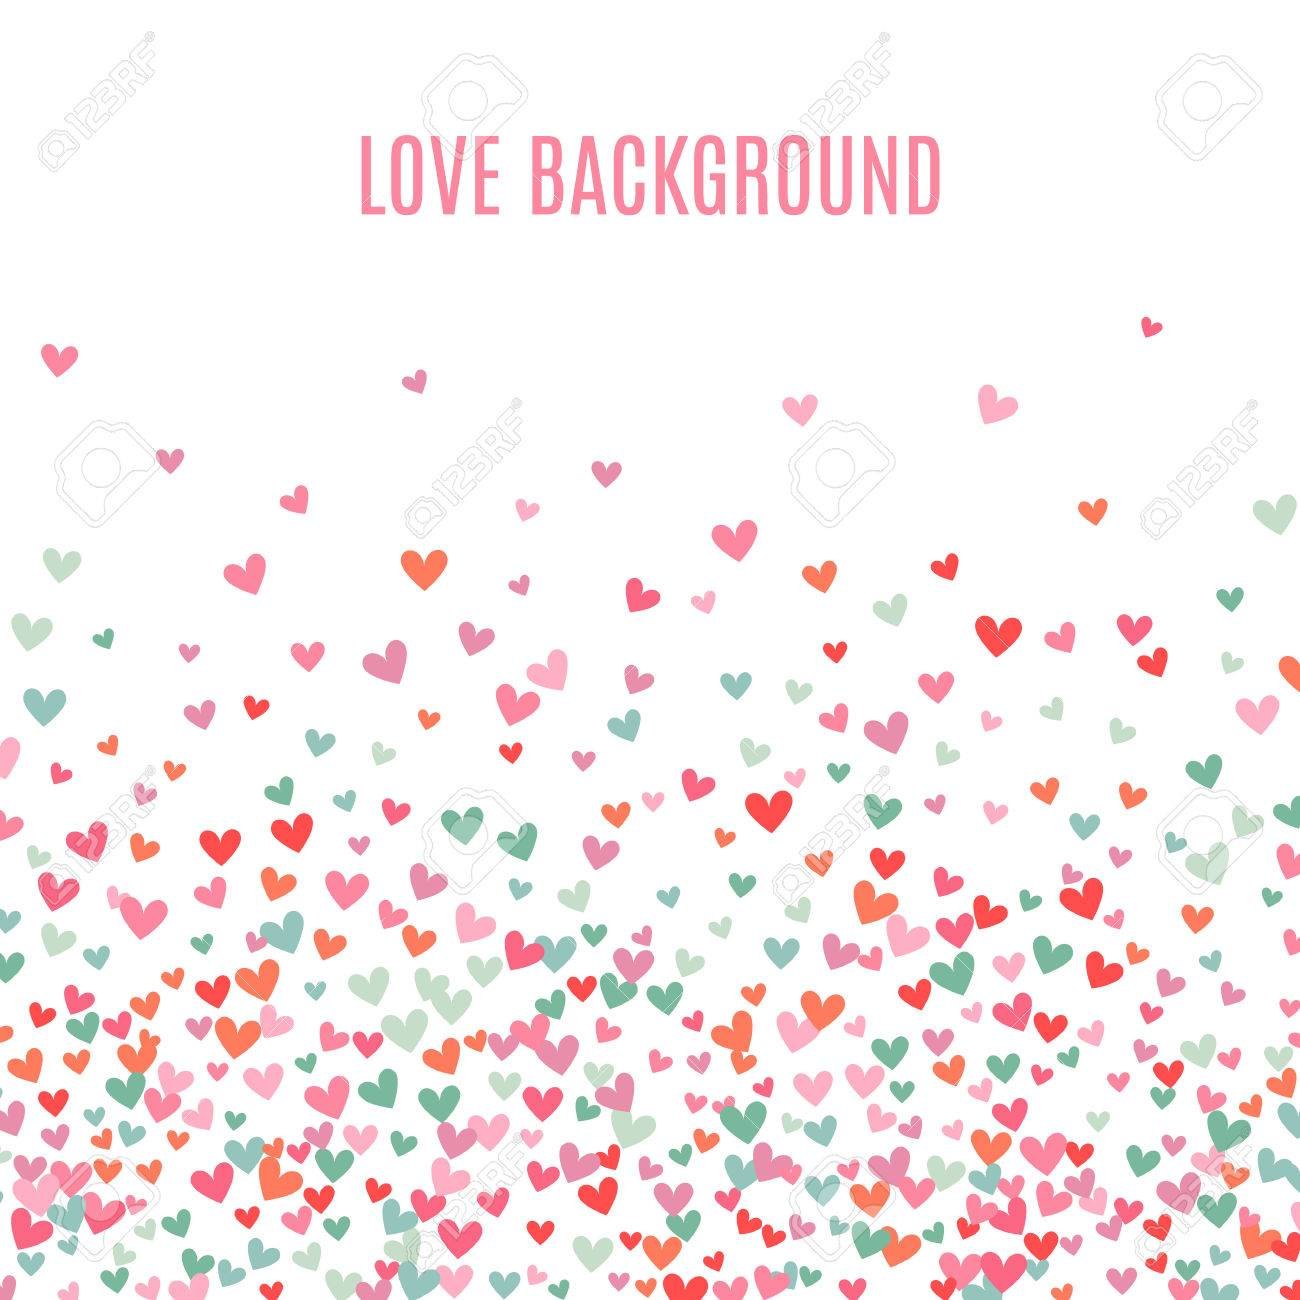 Romantic pink and blue heart background. Vector illustration for holiday design. Many flying hearts down on white background. For wedding card, valentine day greetings, lovely frame. - 51850023